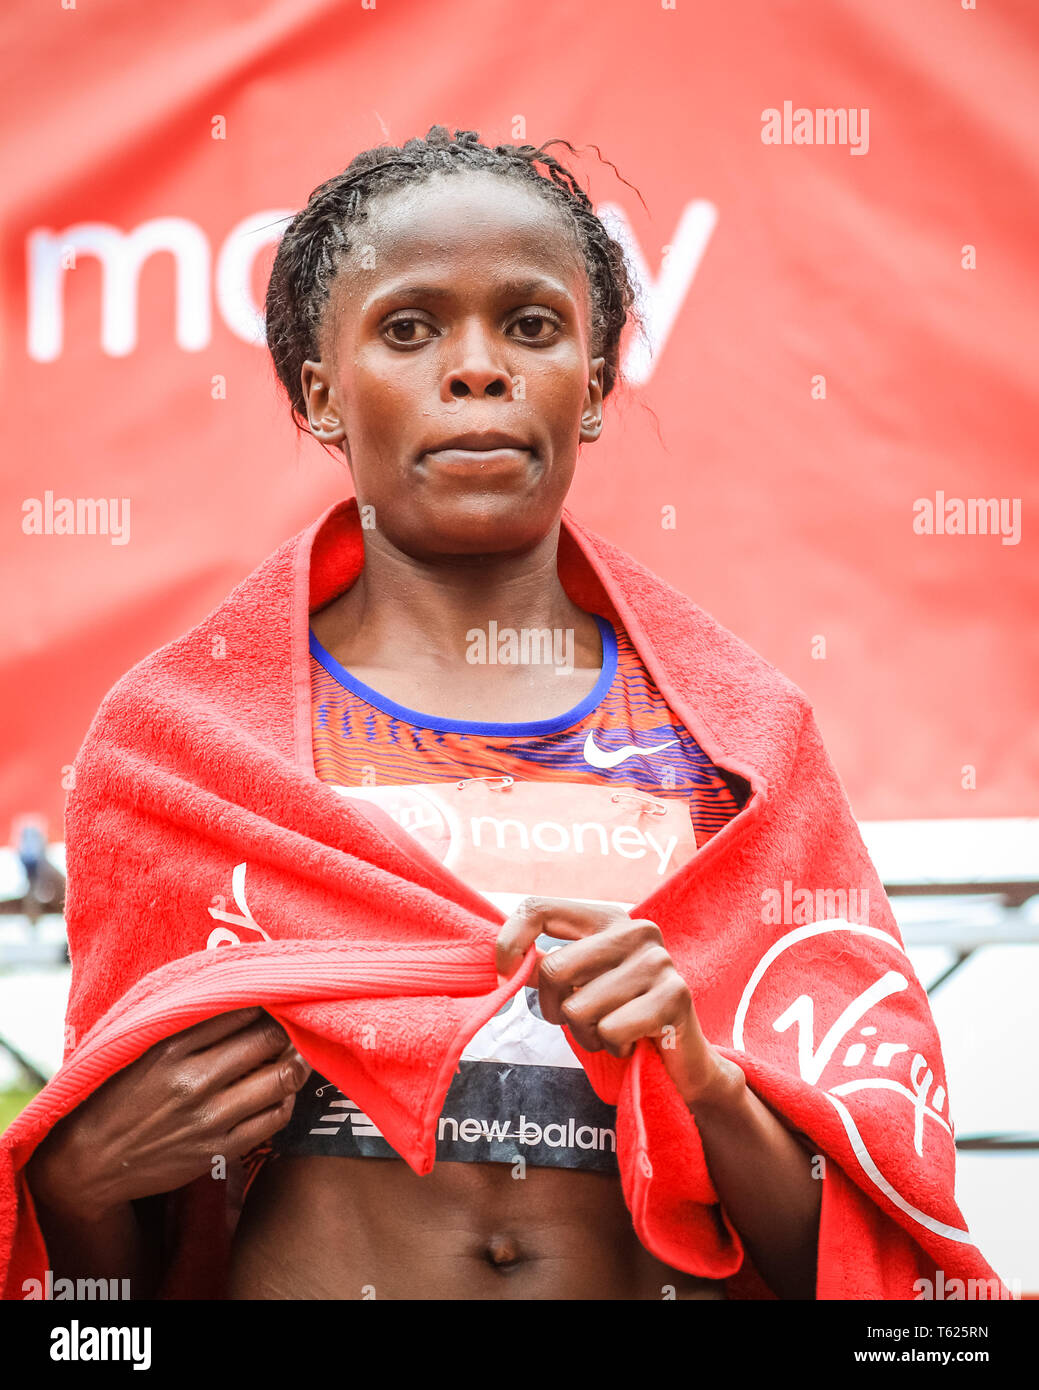 London, UK. 28th April 2019. Brigid Kosgei wins the women's race.The Mall with the finish line, Elite Men's and Women's races. The world's top runners once again assemble in for the London marathon, to contest the 39th race. Credit: Imageplotter/Alamy Live News Stock Photo